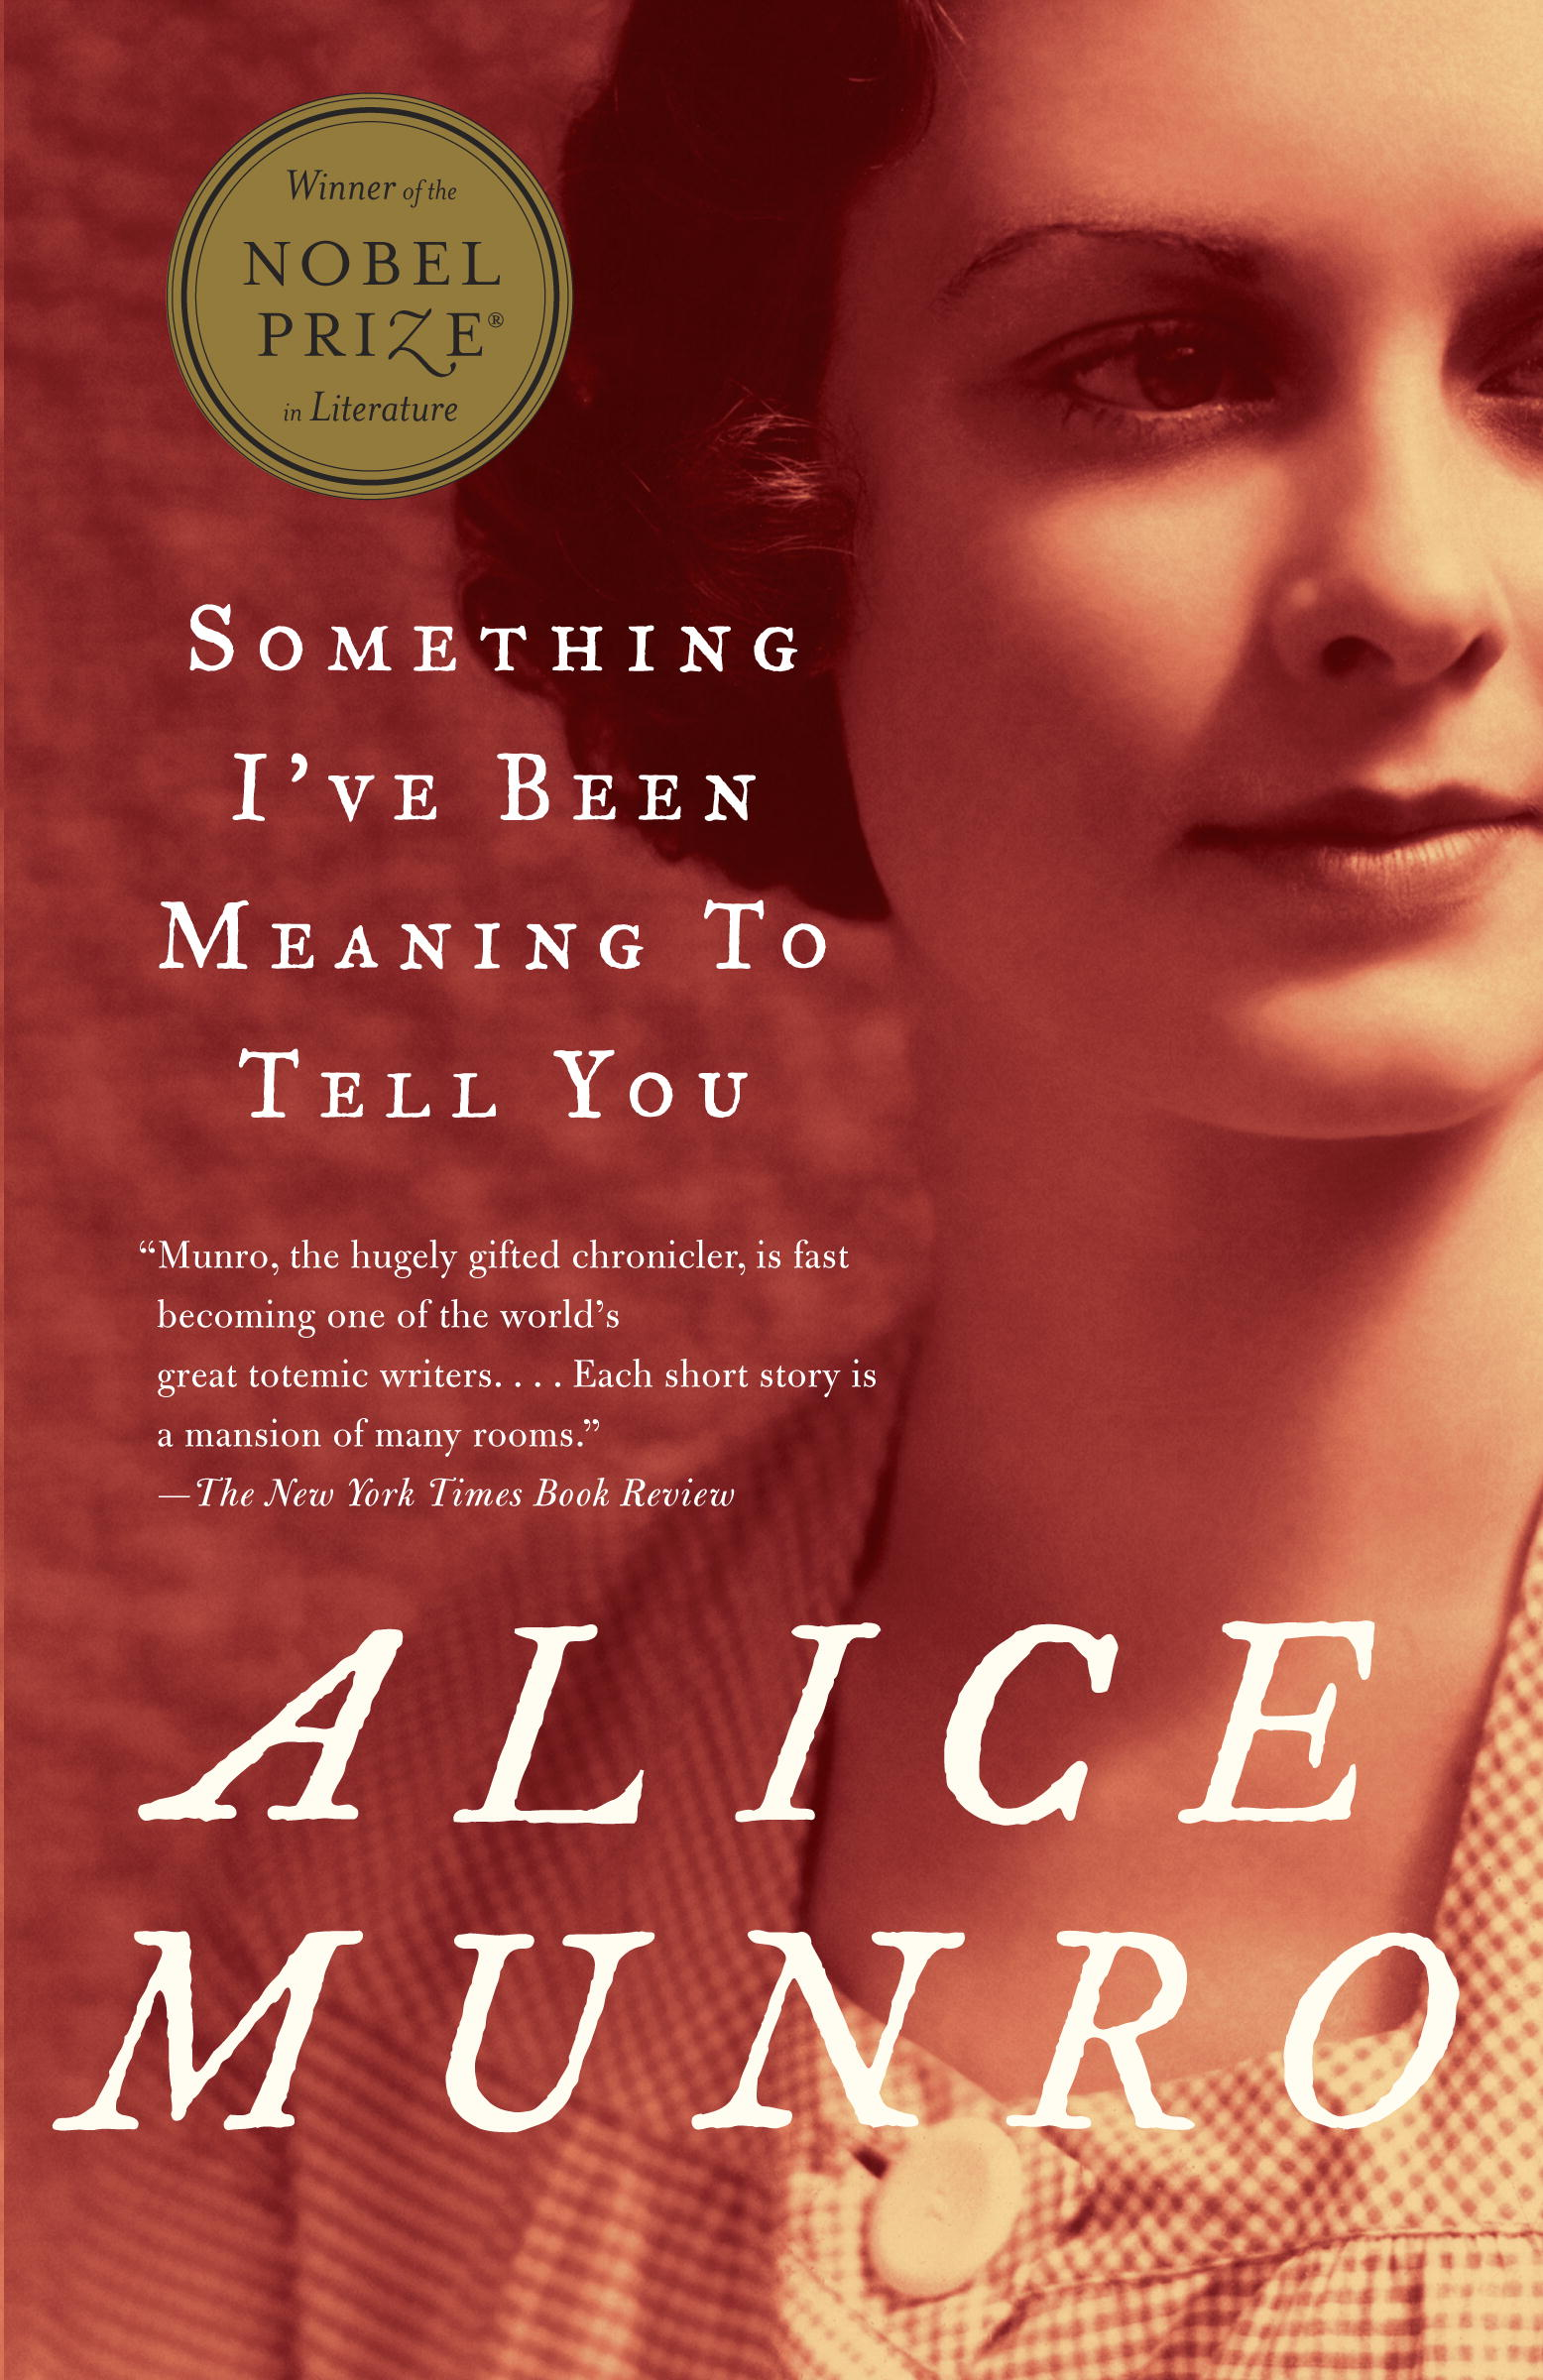 boys and girls by alice munro literary devices Boys and girls by alice munro: summary & analysis 4:52 an ounce of cure by alice munro: themes & literary devices related study materials related recently updated.